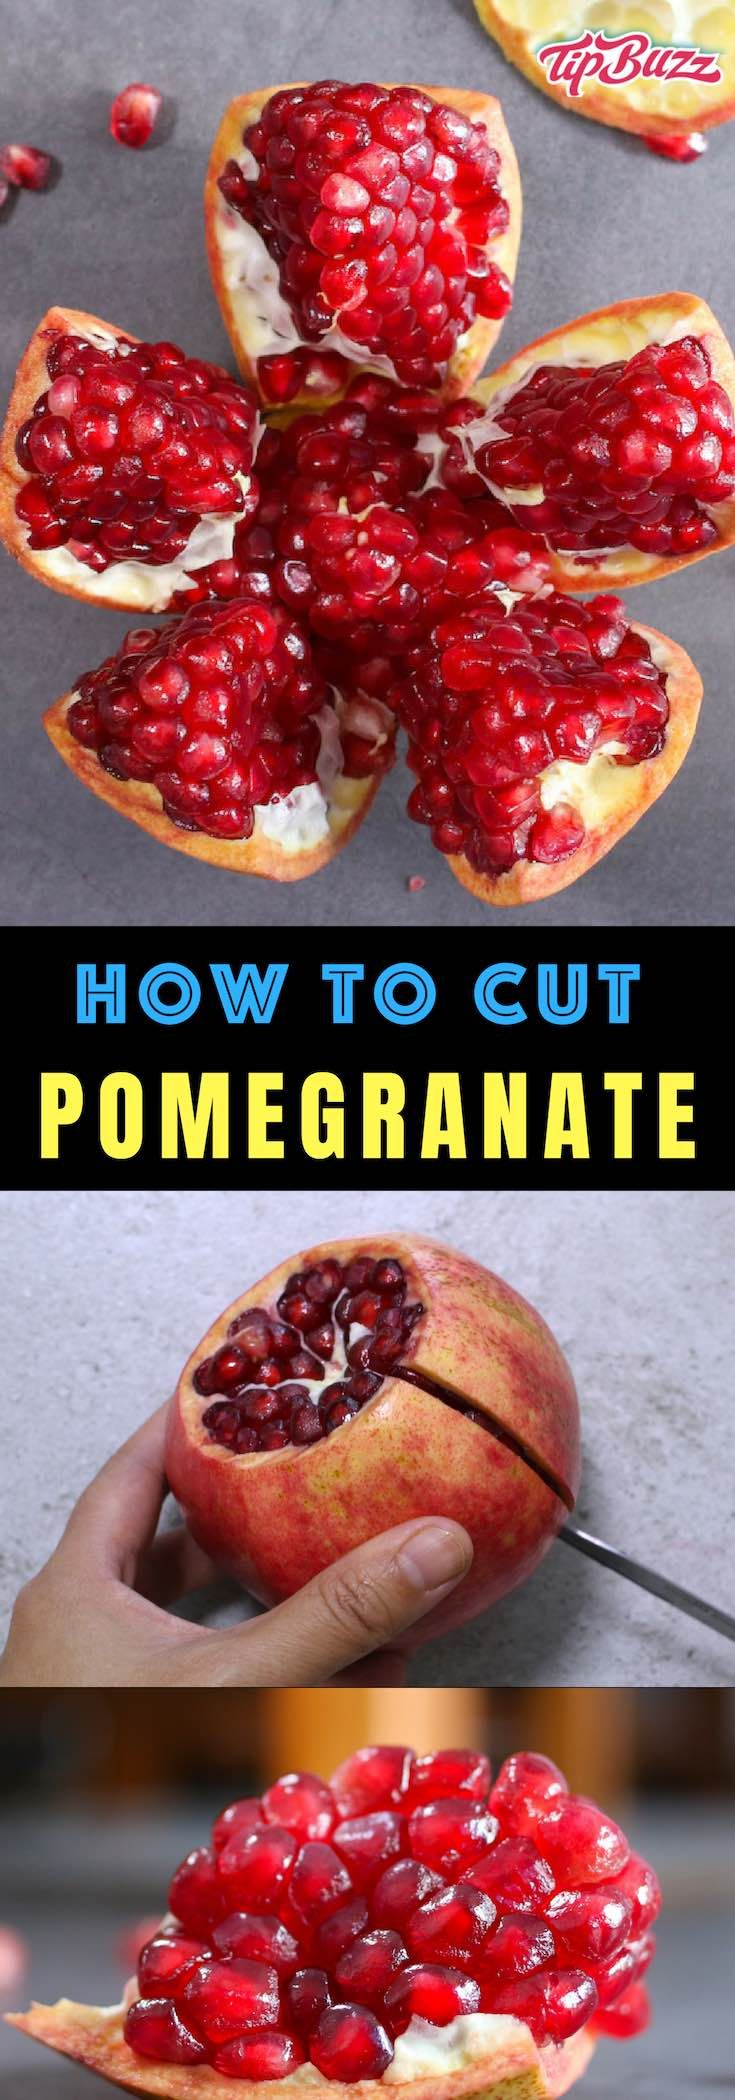 How to Cut and Juice a Pomegranate {+Health Benefits} - TipBuzz